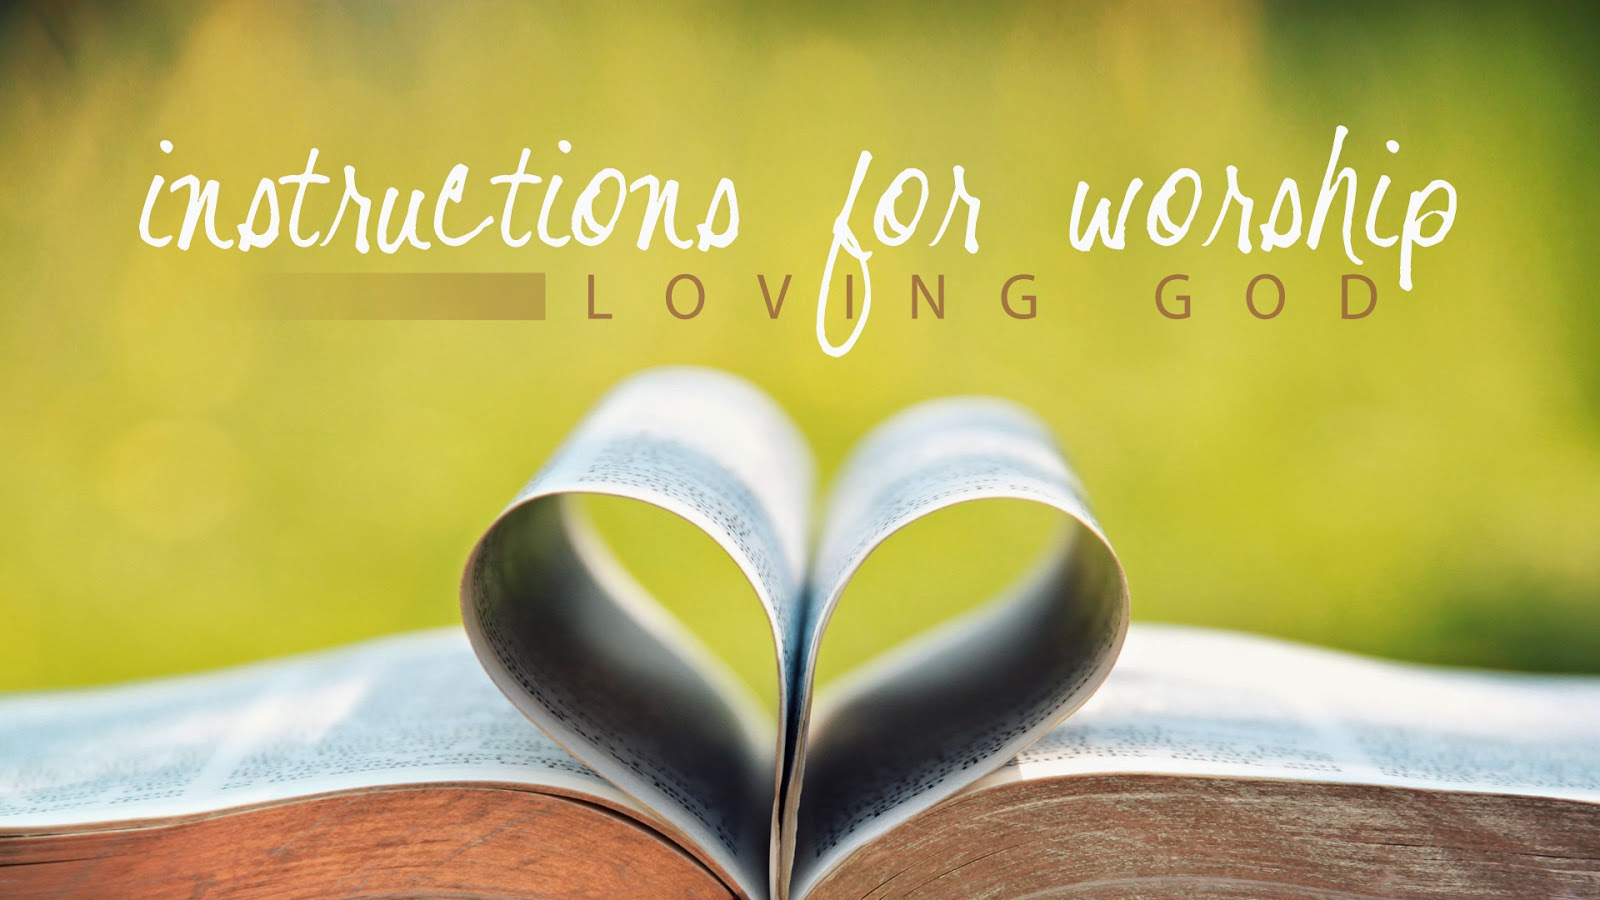 instructions for worship: loving God